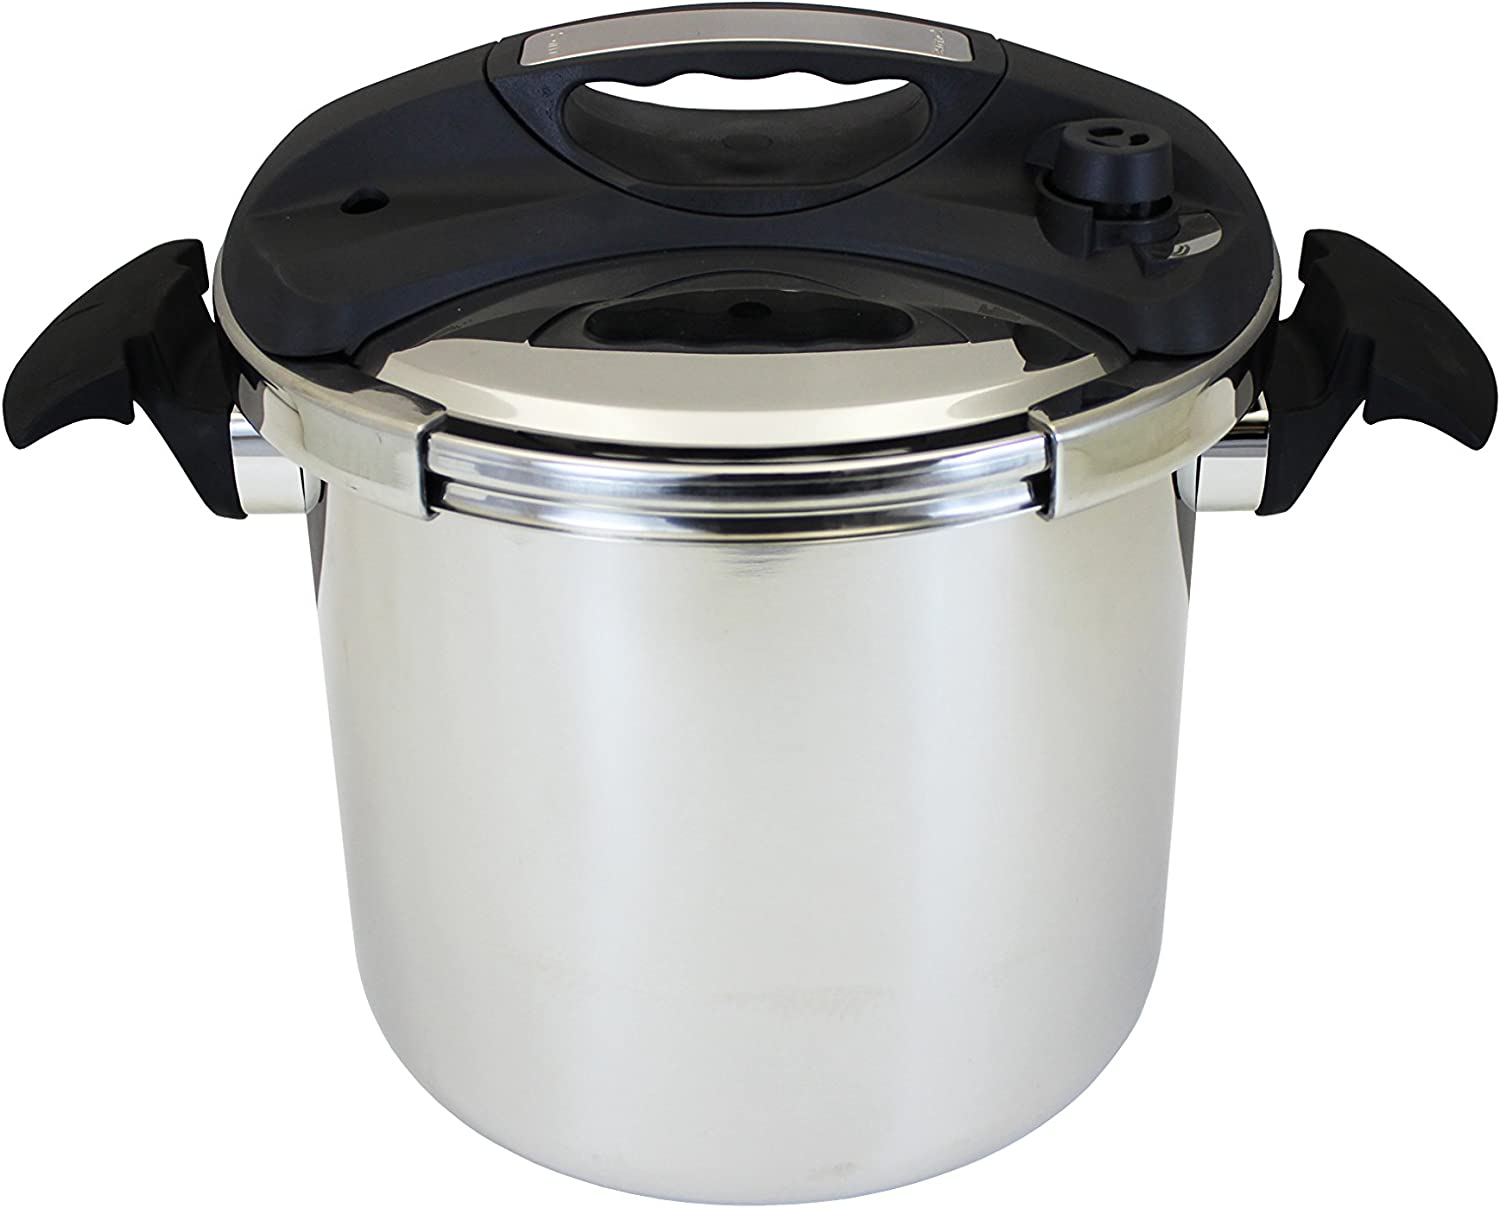 CONCORD 10.5 QT Stainless Steel Pressure Cooker Cookware by Concord Cookware